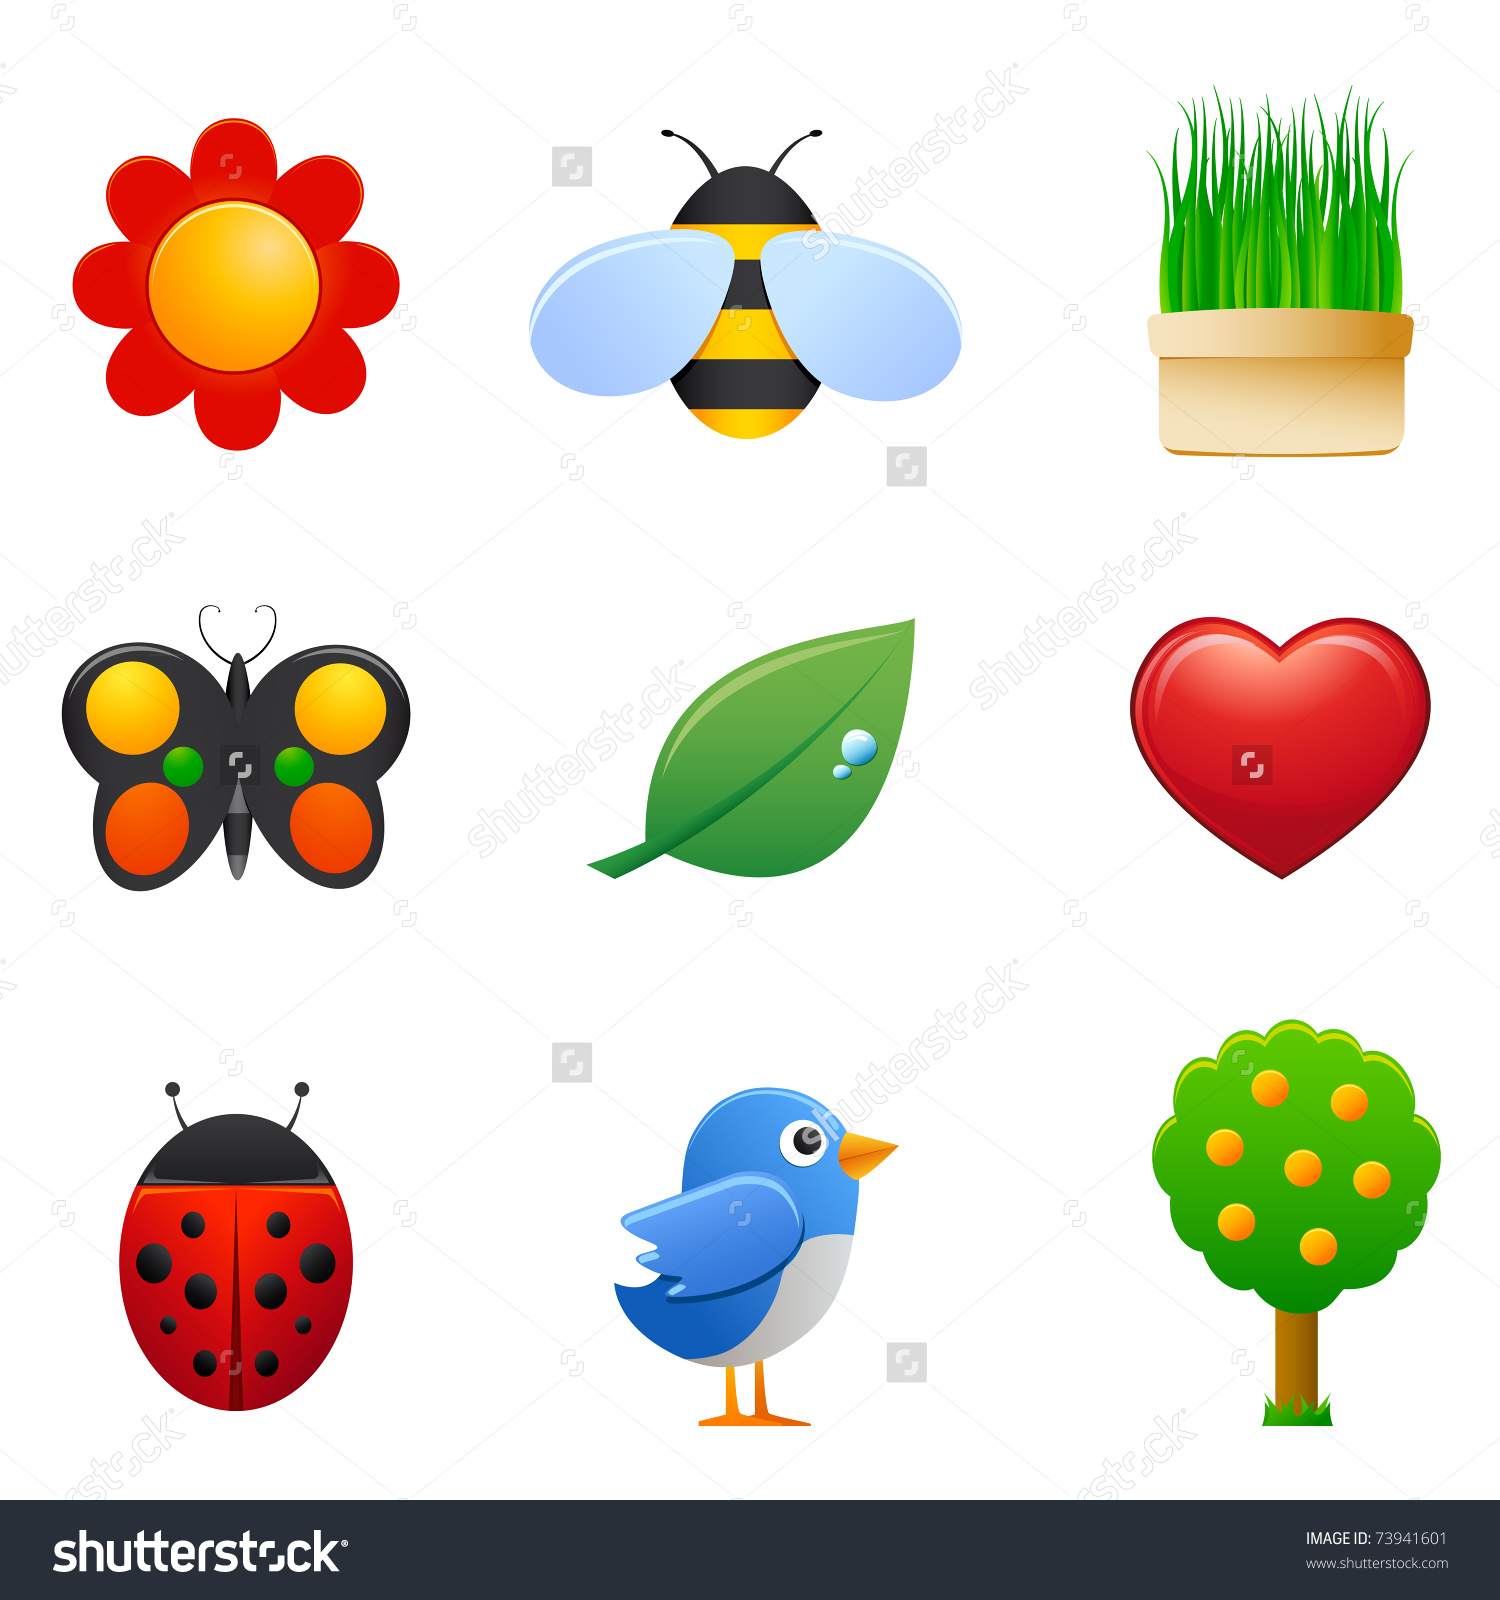 Signs of spring clipart.